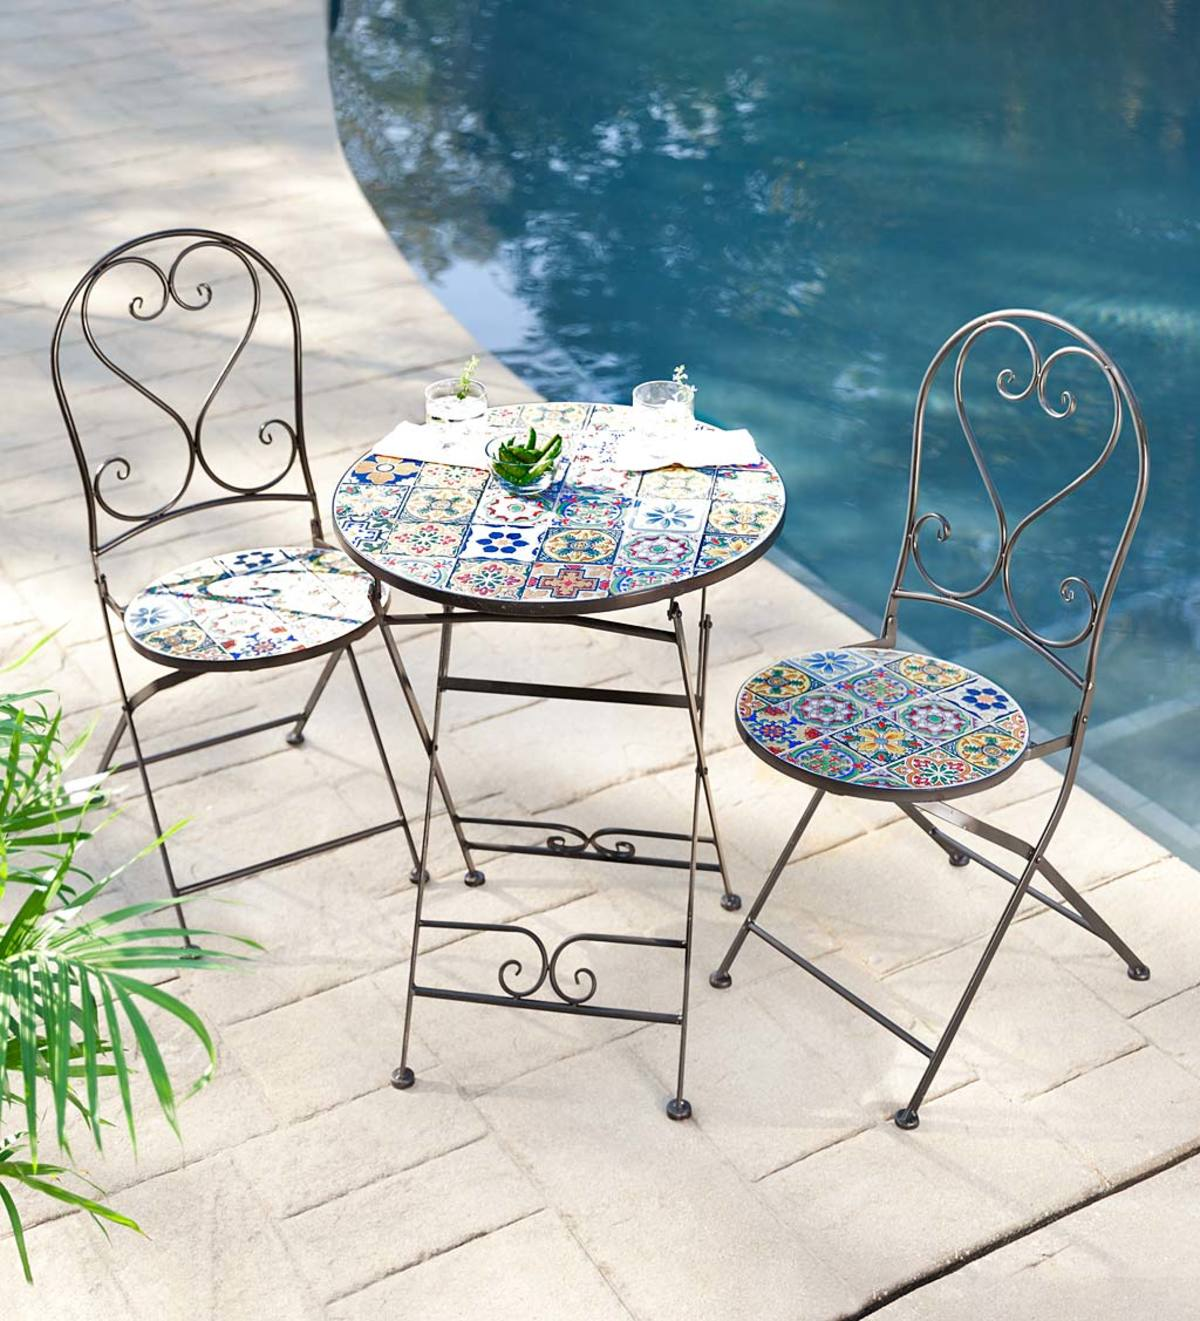 Mosaic Tile 3-Piece Bistro Set with Folding Chairs and Table